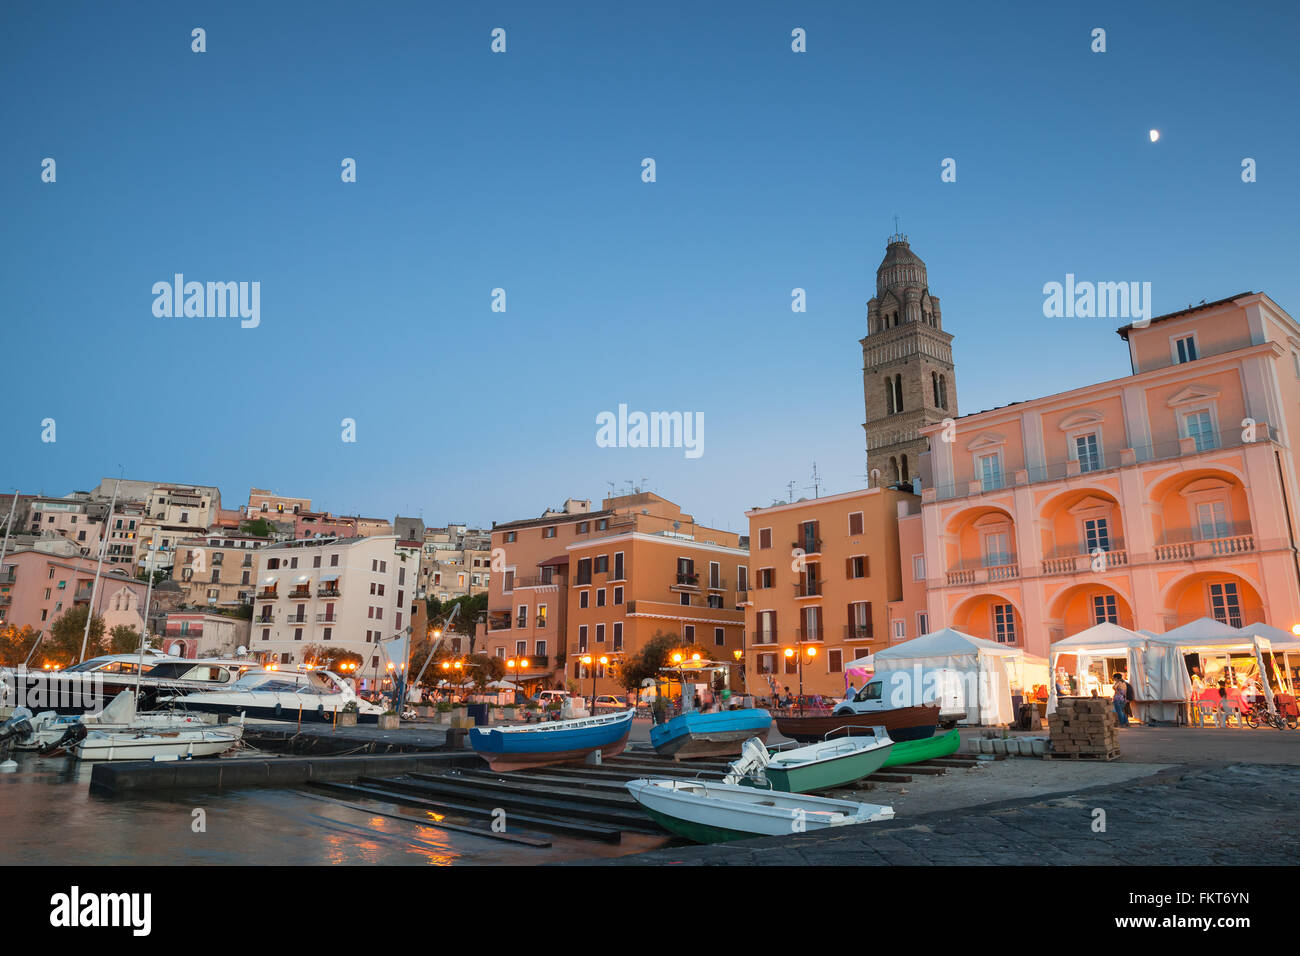 Port with moored boats and pleasure yachts. Night cityscape of Gaeta town, Italy - Stock Image